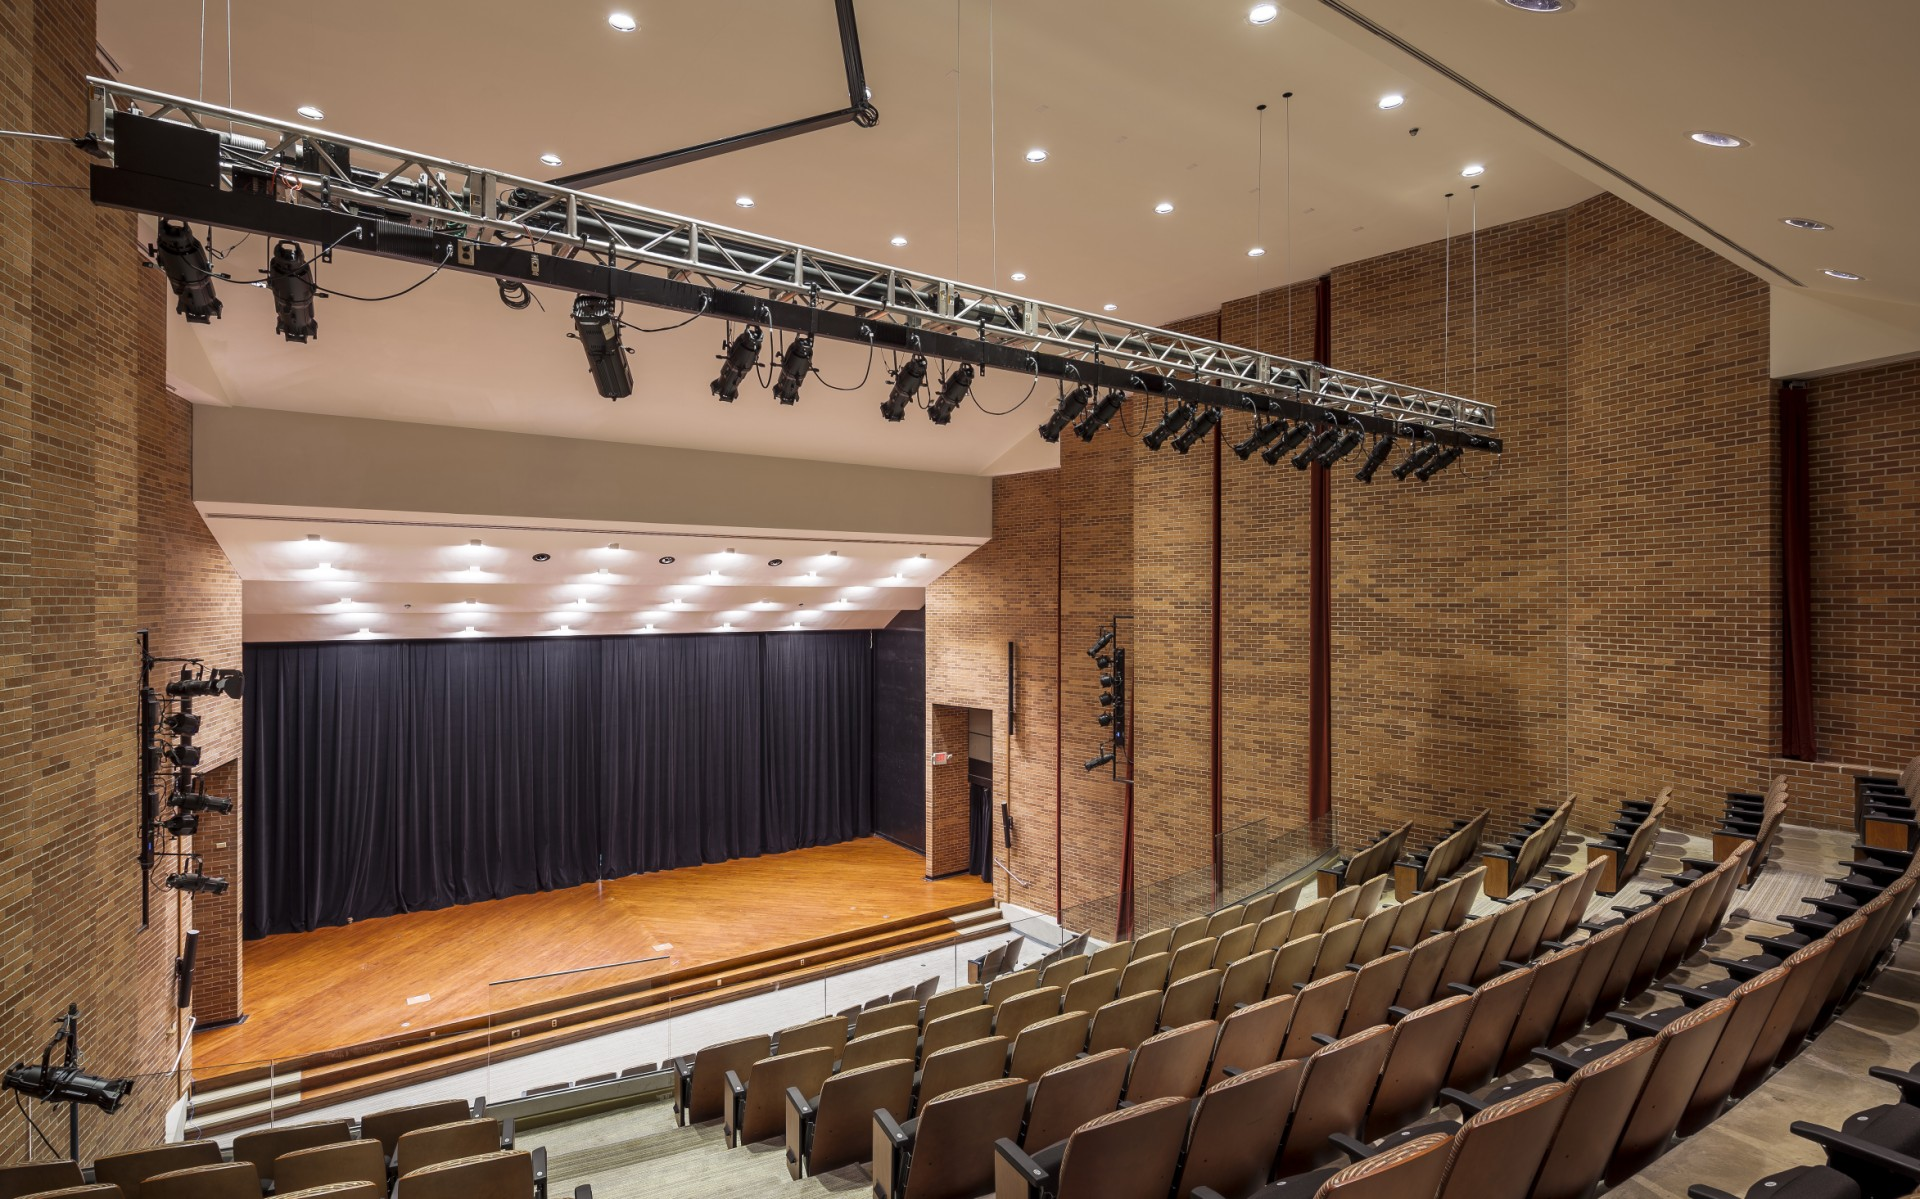 With full dimming down to 1%, the luminaires allow the concert hall to host a much wider range of events.